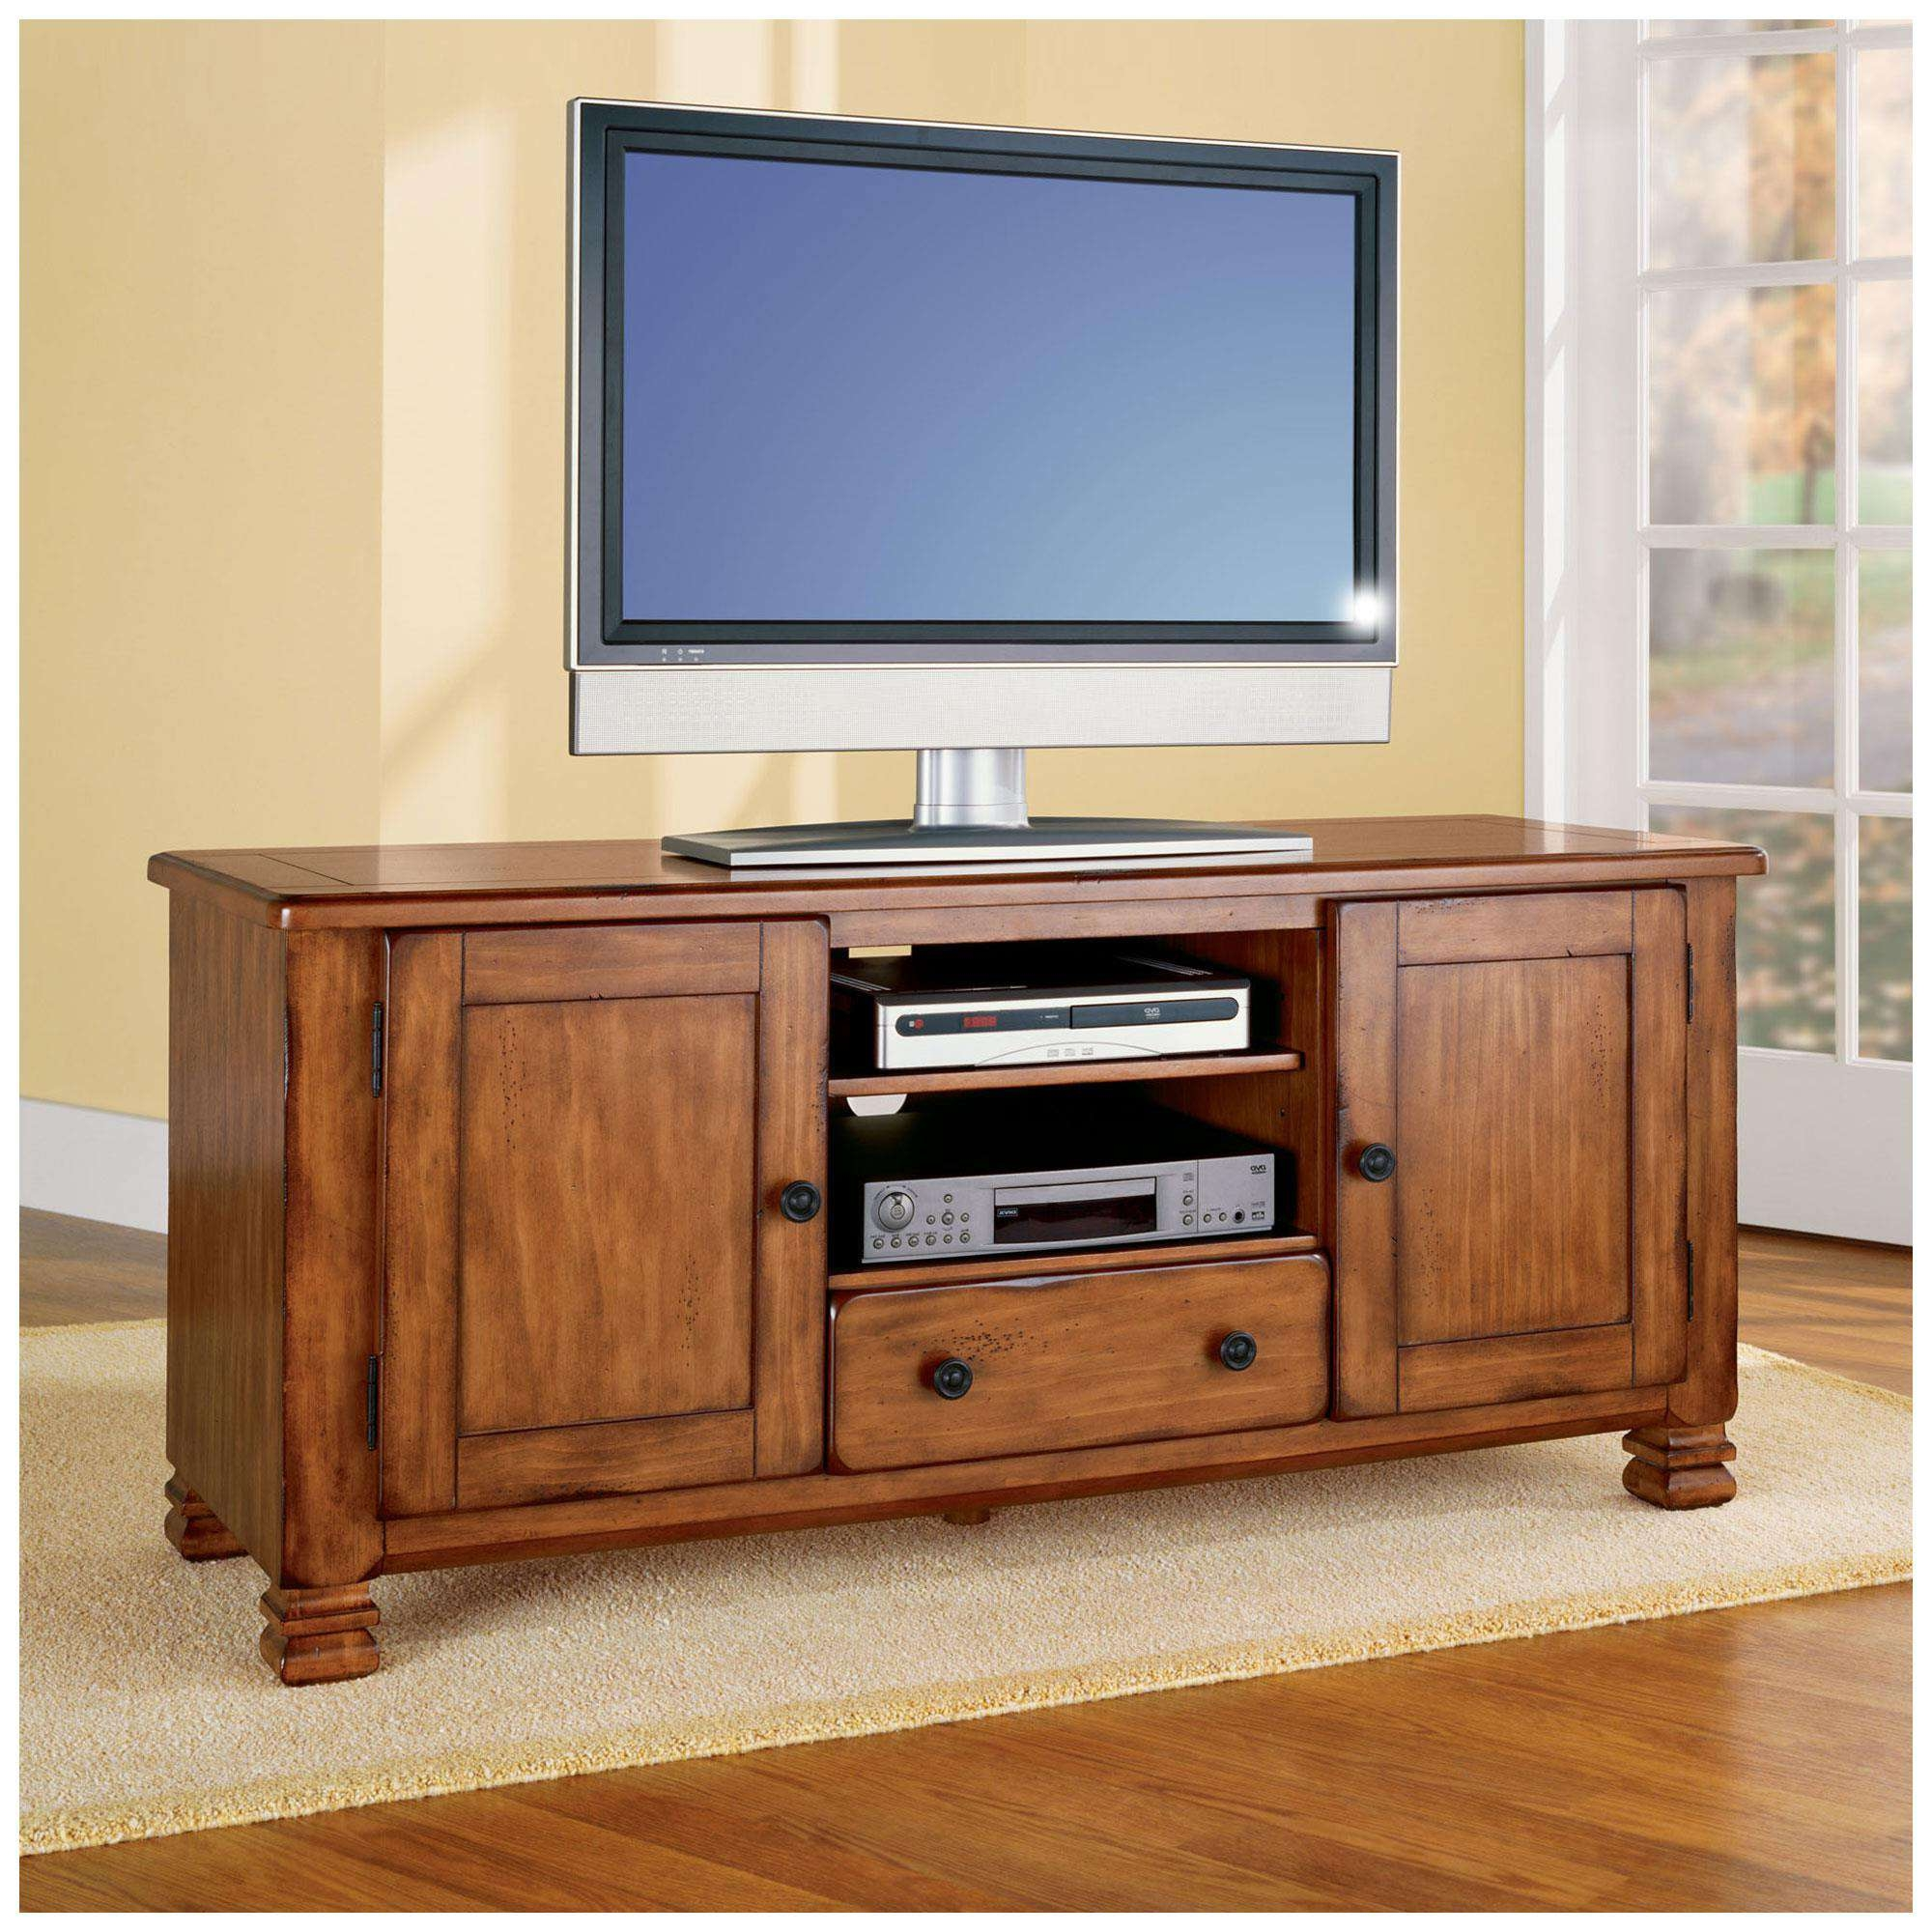 Open Tv Stands Uncategorized Used File Cabinets For Sale Best Pertaining To Wooden Tv Stands For 50 Inch Tv (View 5 of 15)